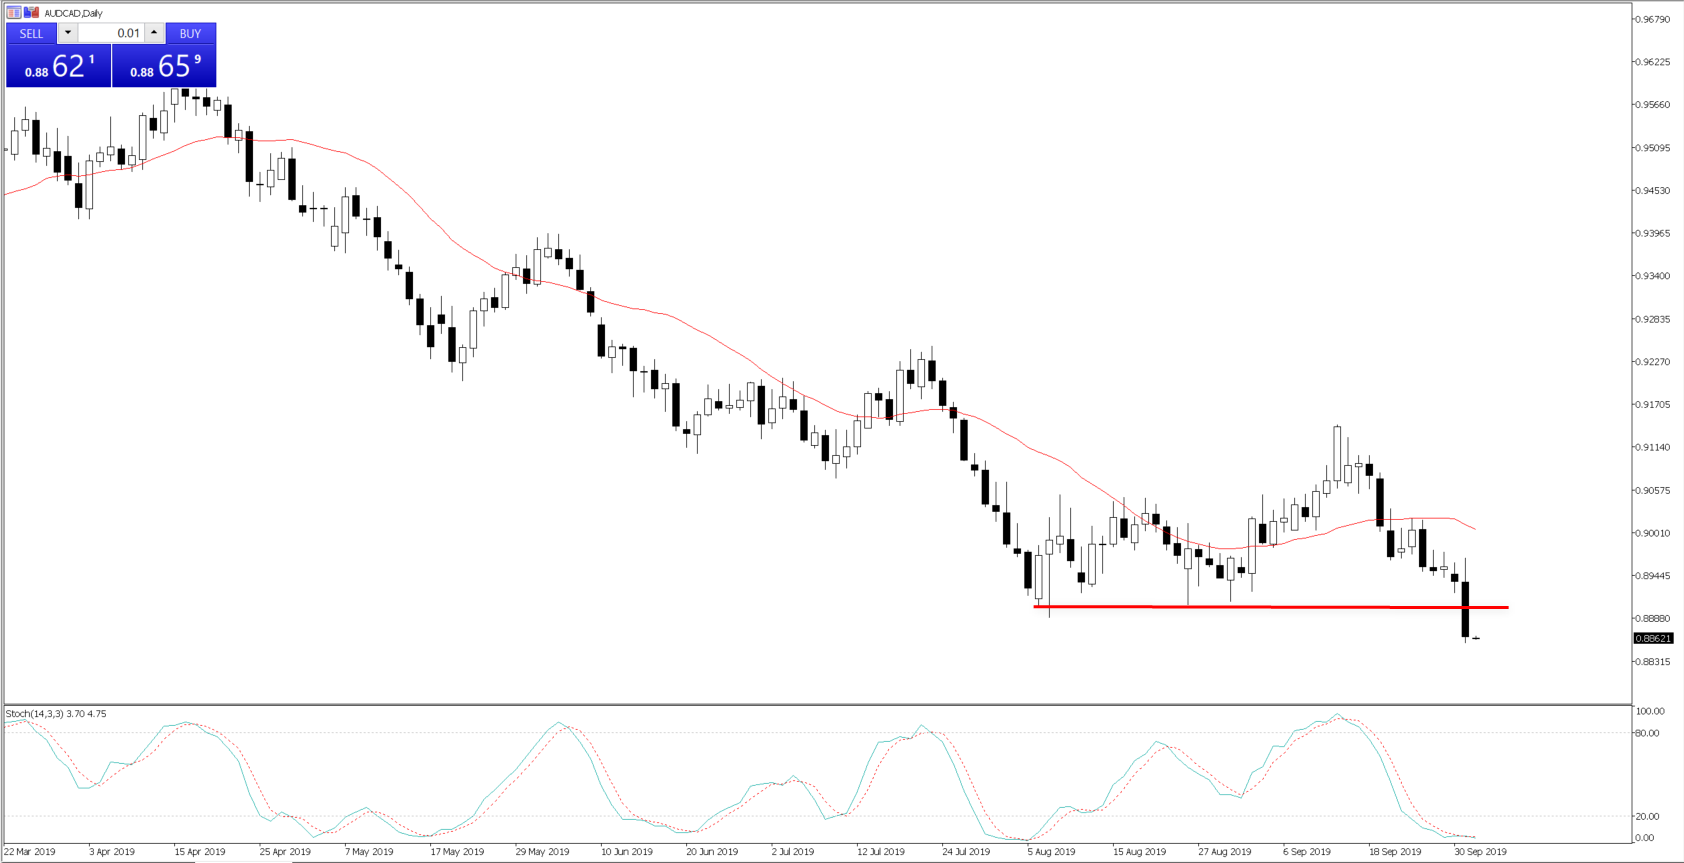 Daily chart of AUDCAD